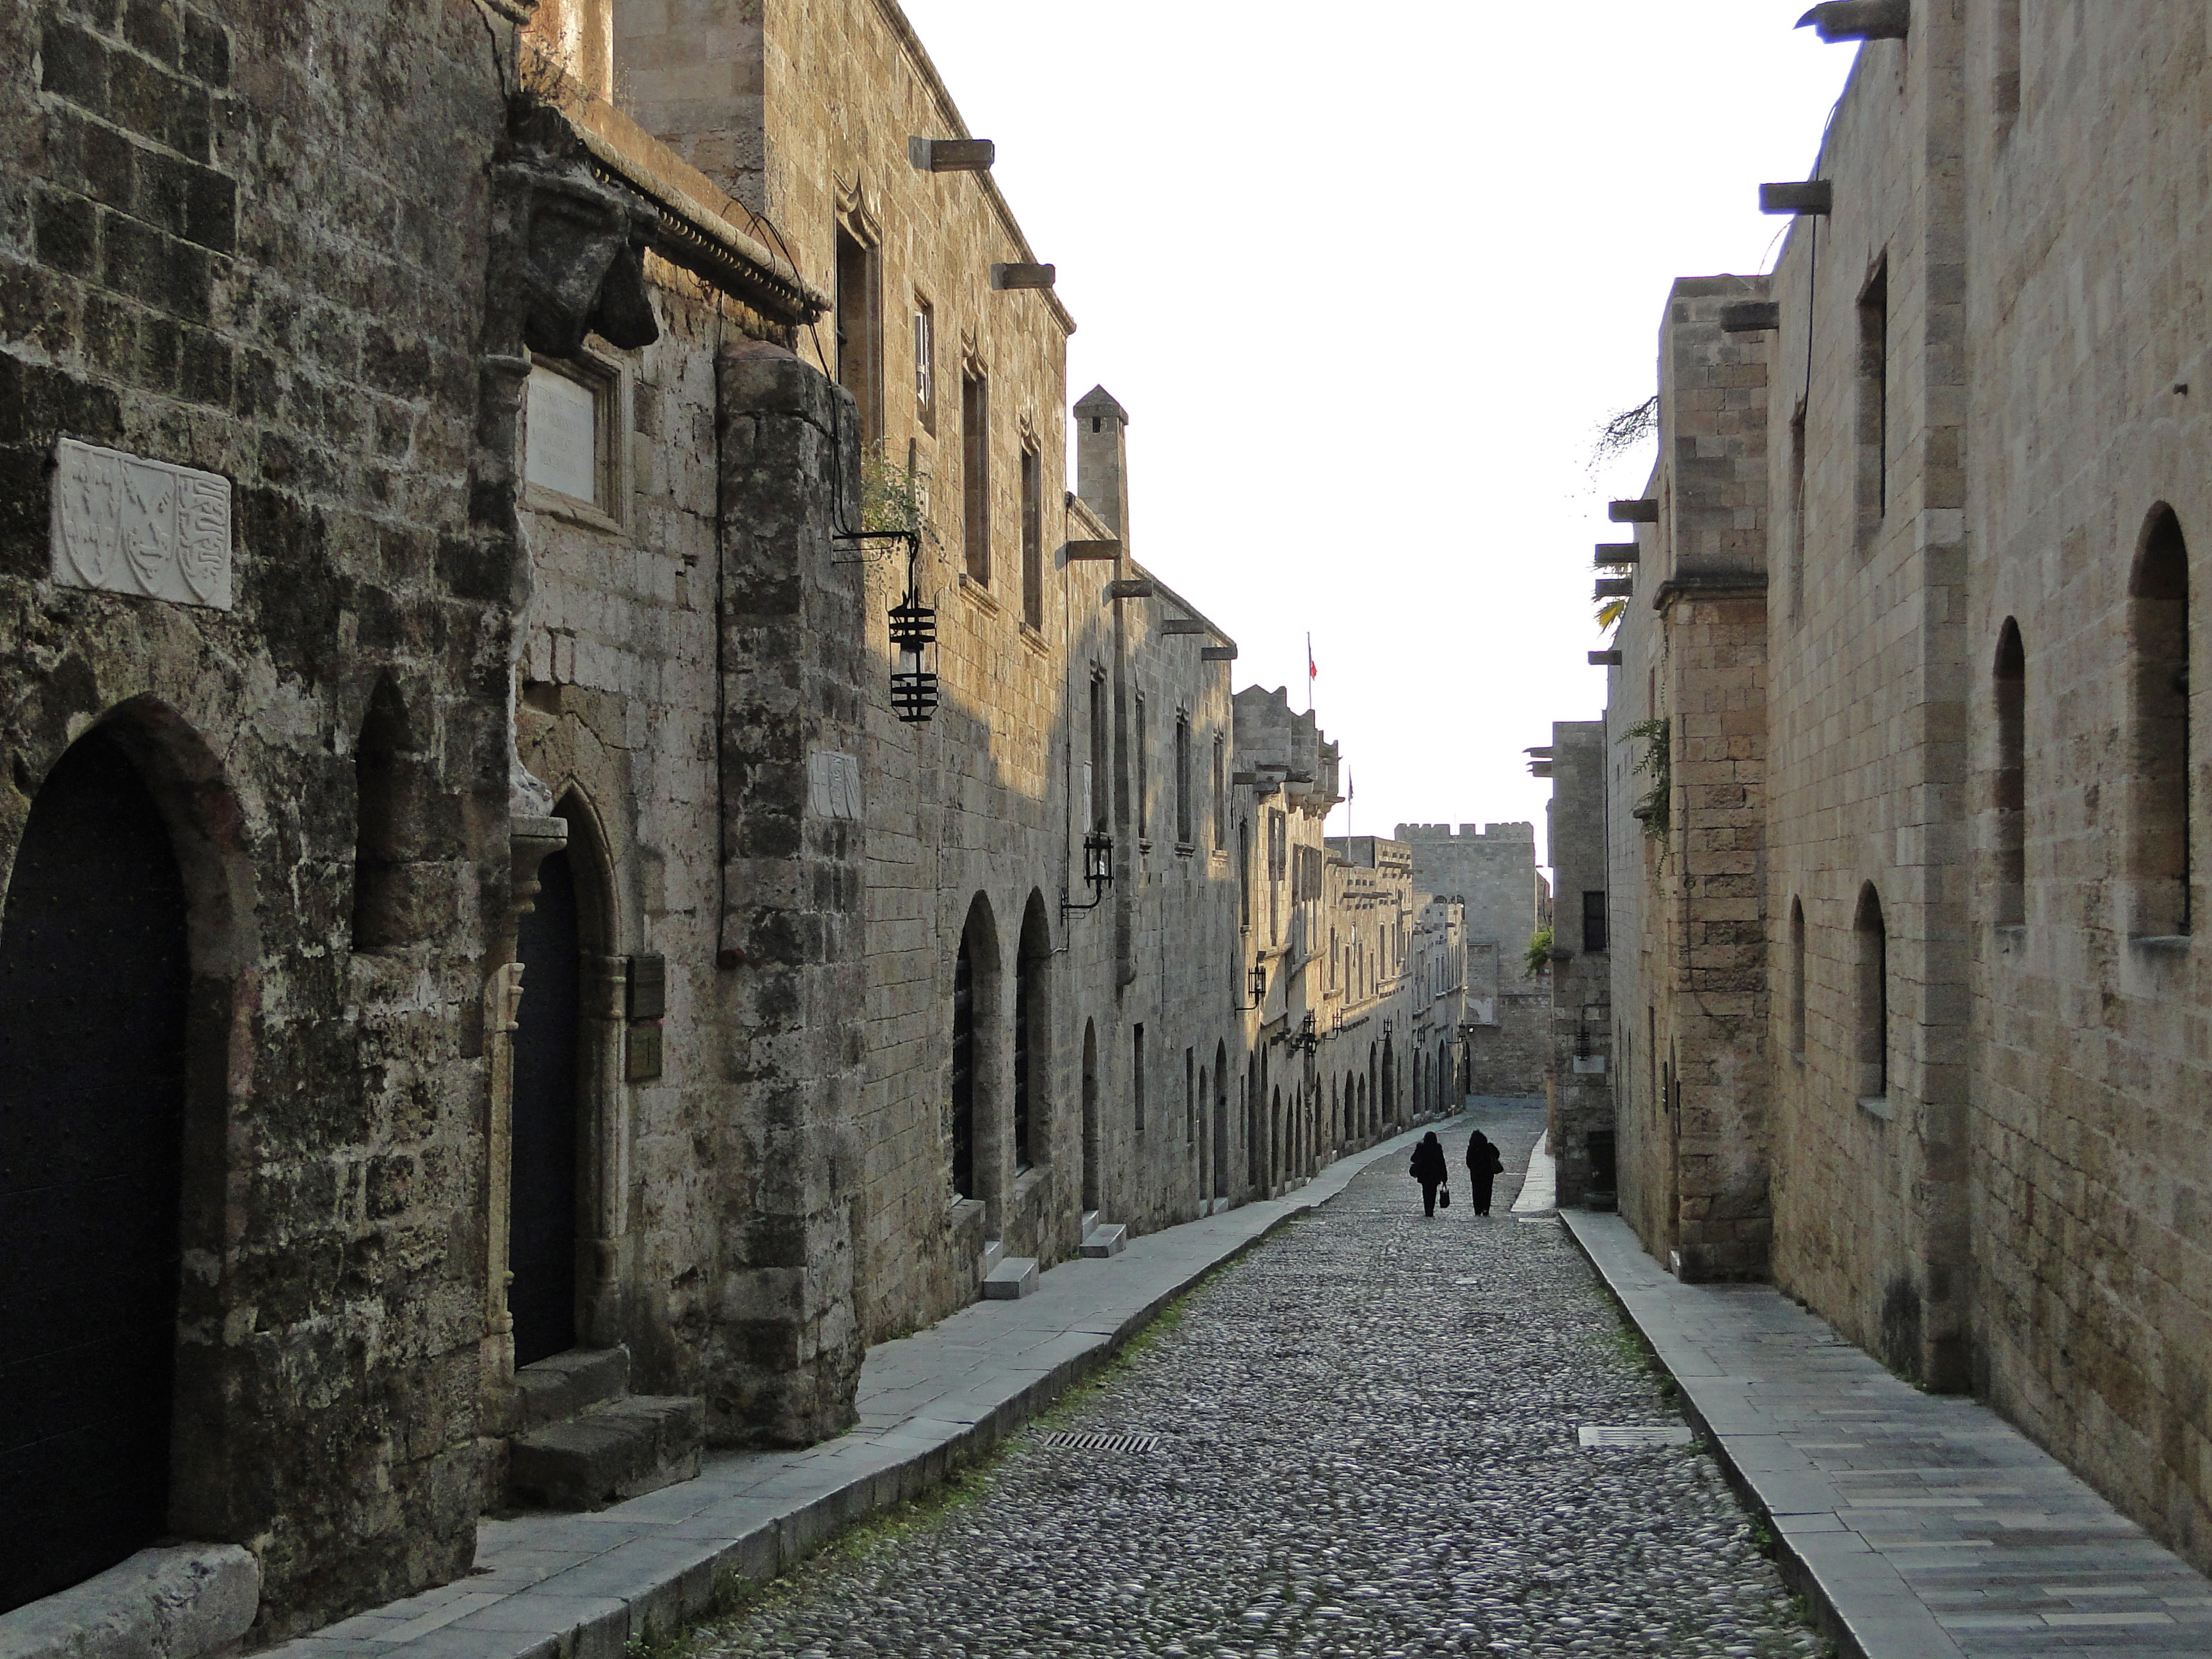 File:Street of Knights (Rhodes) 02.jpg - Wikimedia Commons